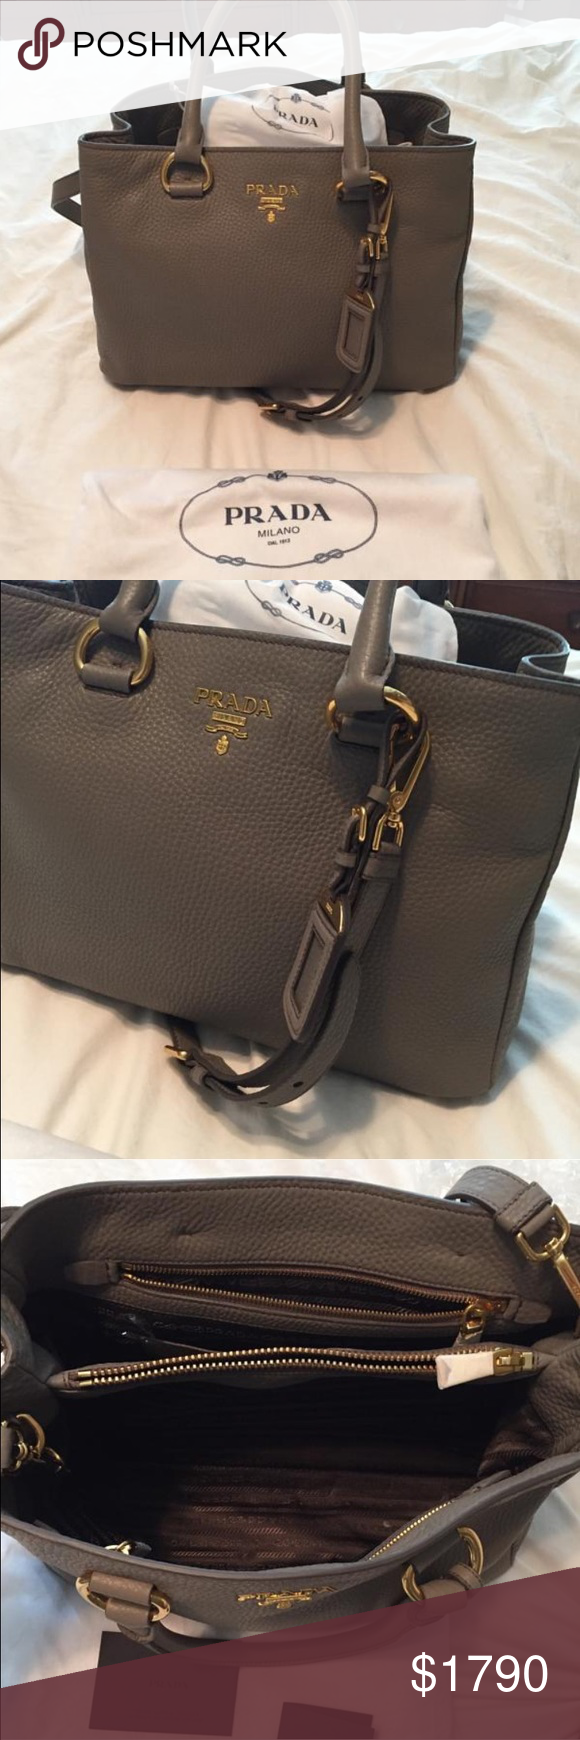 🆕🎀Prada Vito Daino lux double bag Brand new and never used. Soft buttery leather with removable strap. Comes with paperwork and original dustbag. Prada Bags Satchels